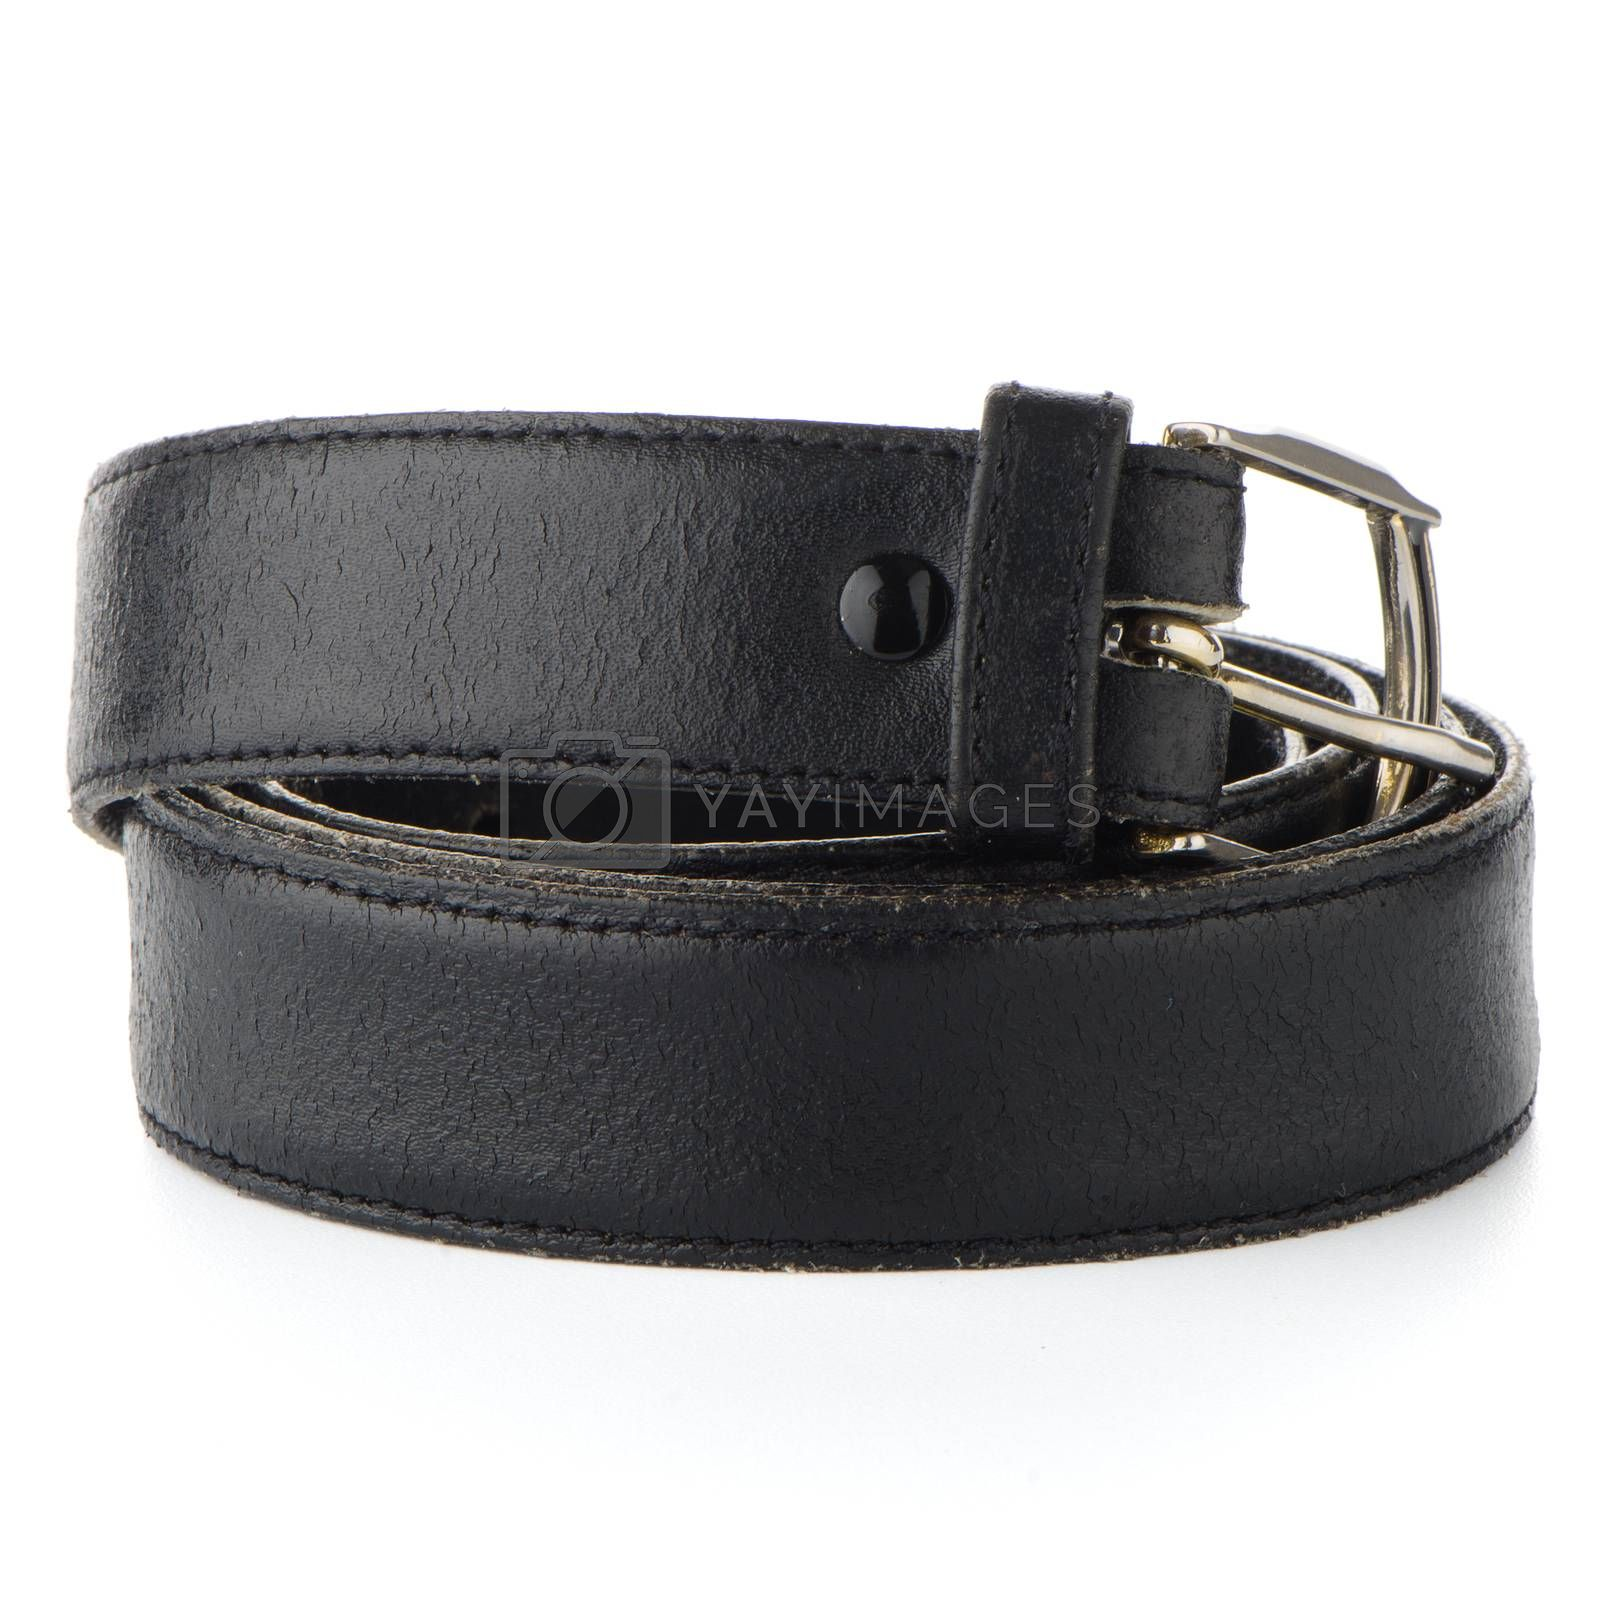 Leather belt by homydesign